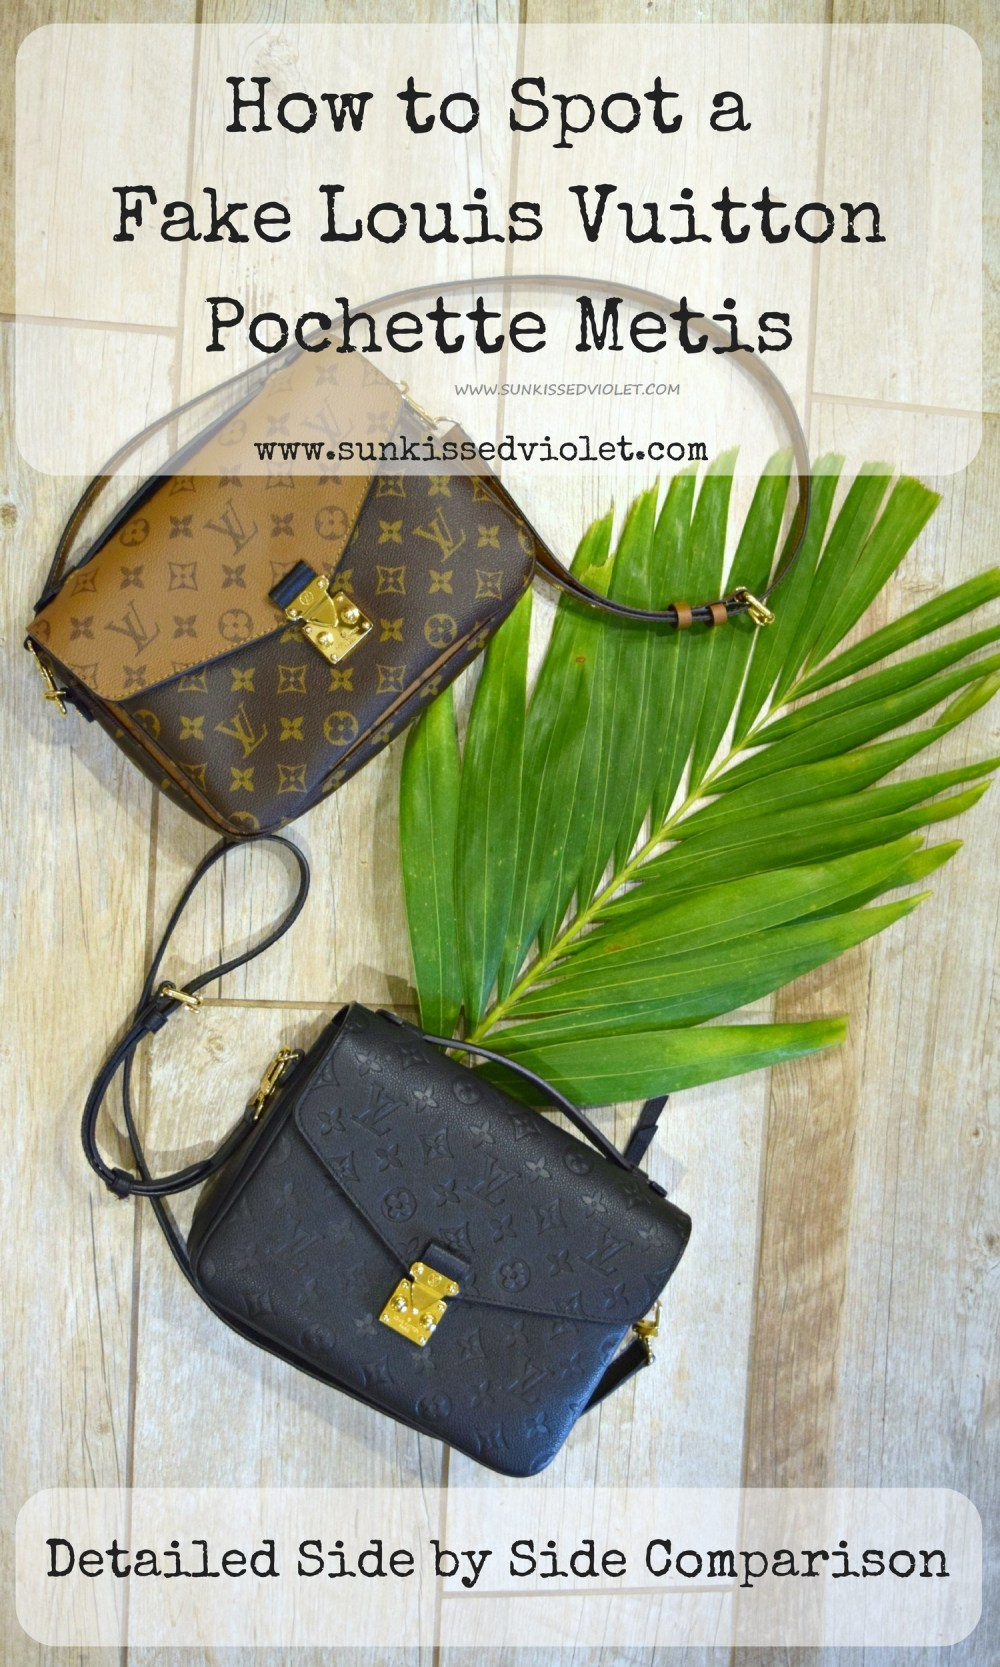 543de6522fa5 How to spot a FAKE Louis Vuitton Pochette Metis: A Detailed Review ...